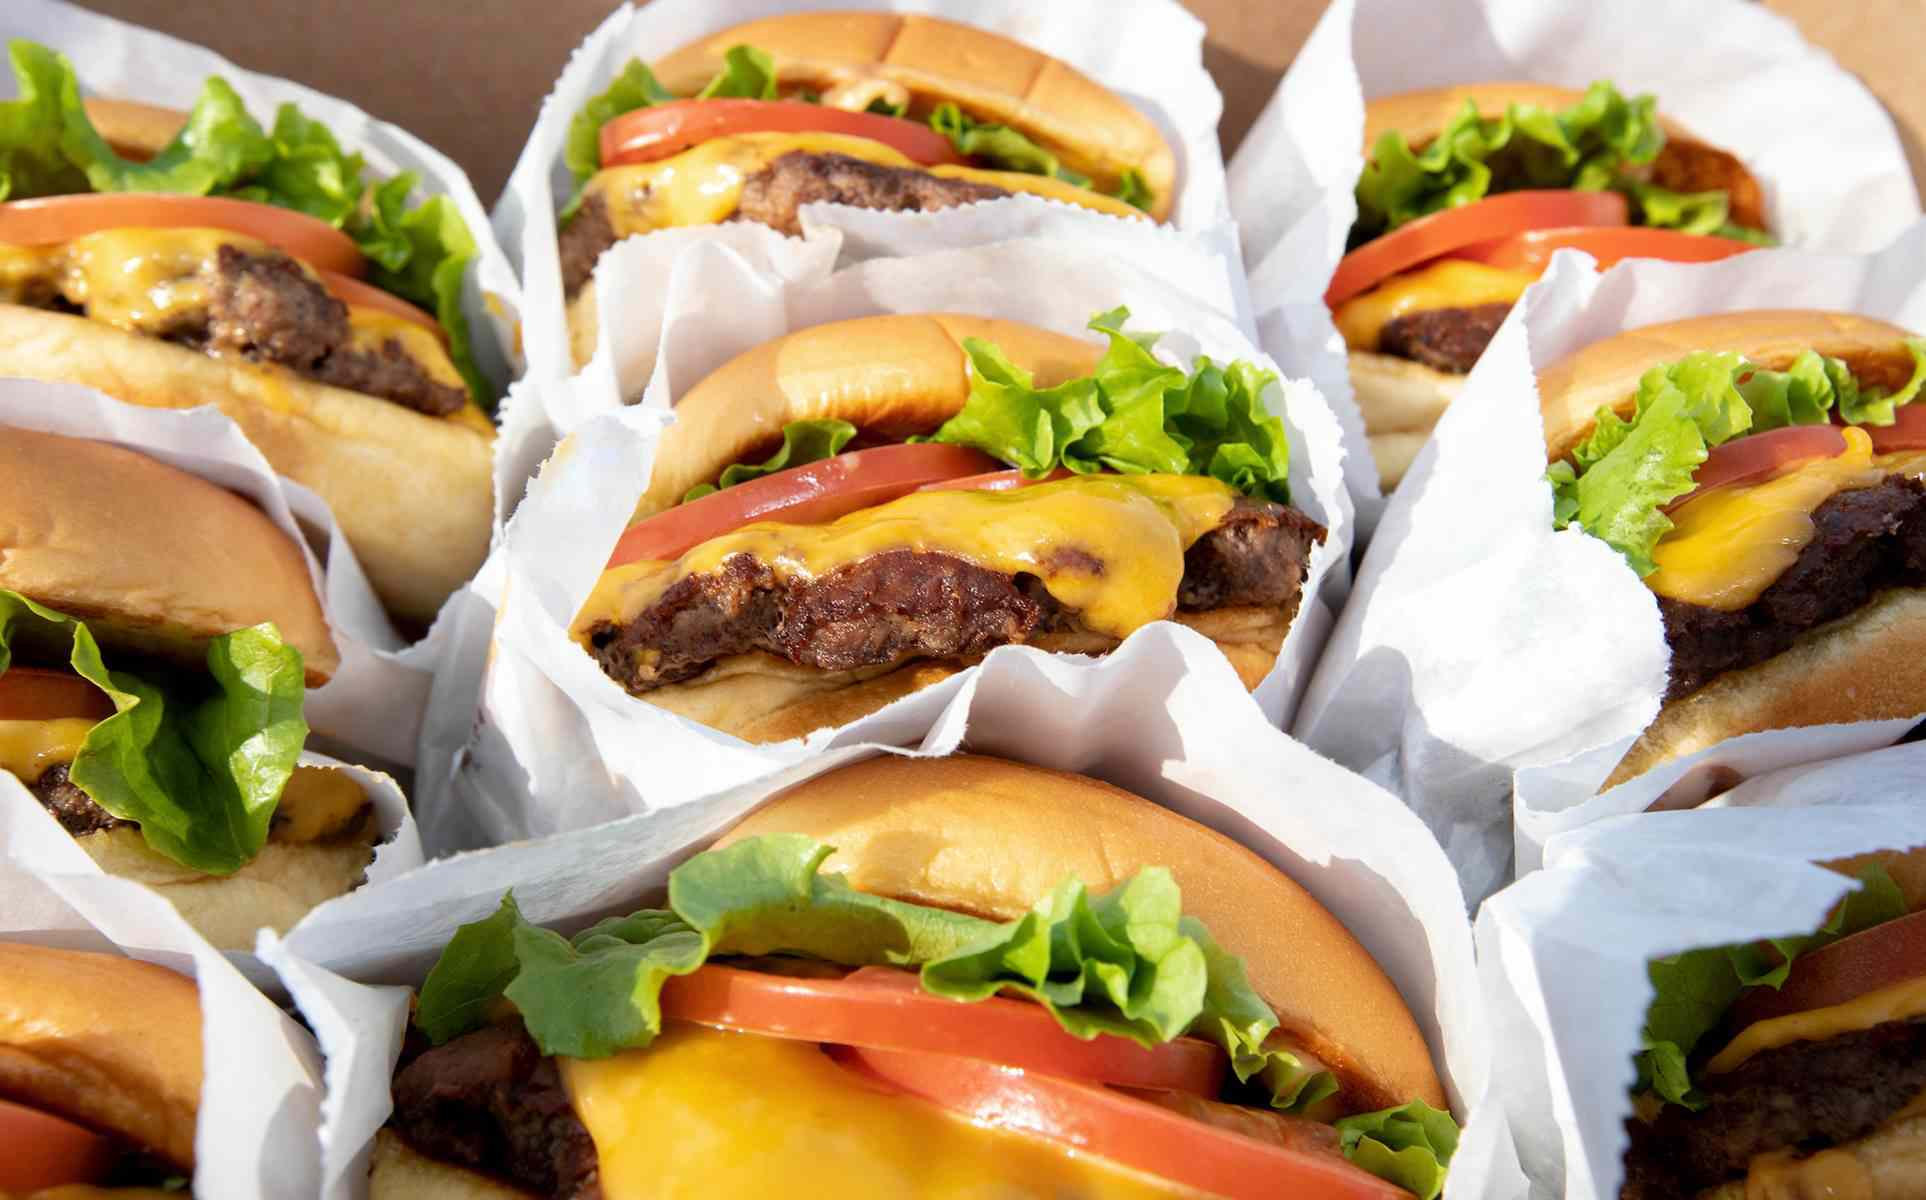 9 cheesburgers with lettuce and tomato in white paper bags